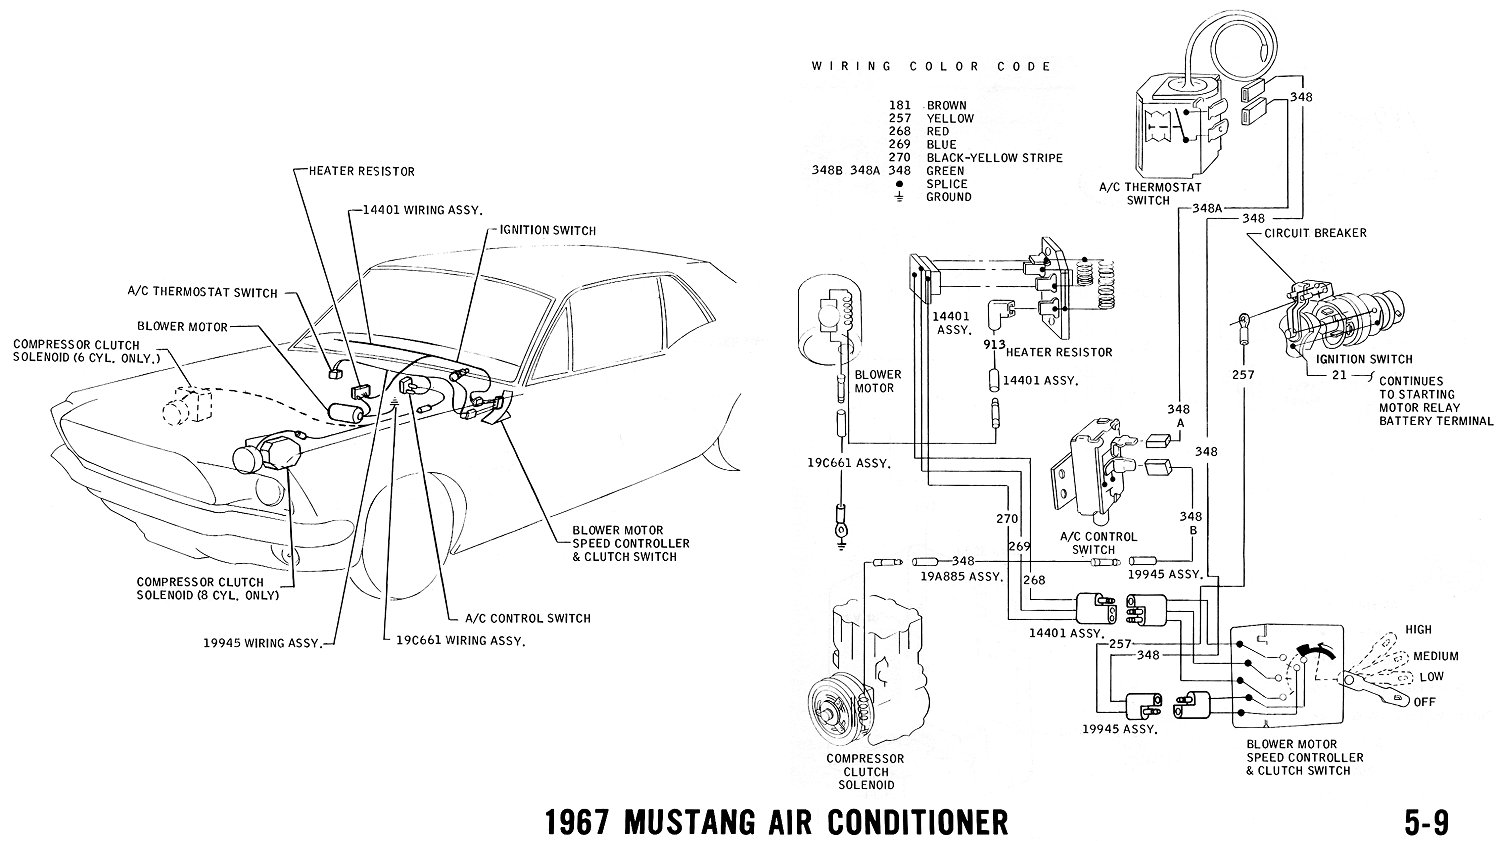 1967 mustang neutral safety switch diagram  1967  free engine image for user manual download 67 Mustang Alternator Wiring Diagram 67 Mustang Ammeter Wiring-Diagram